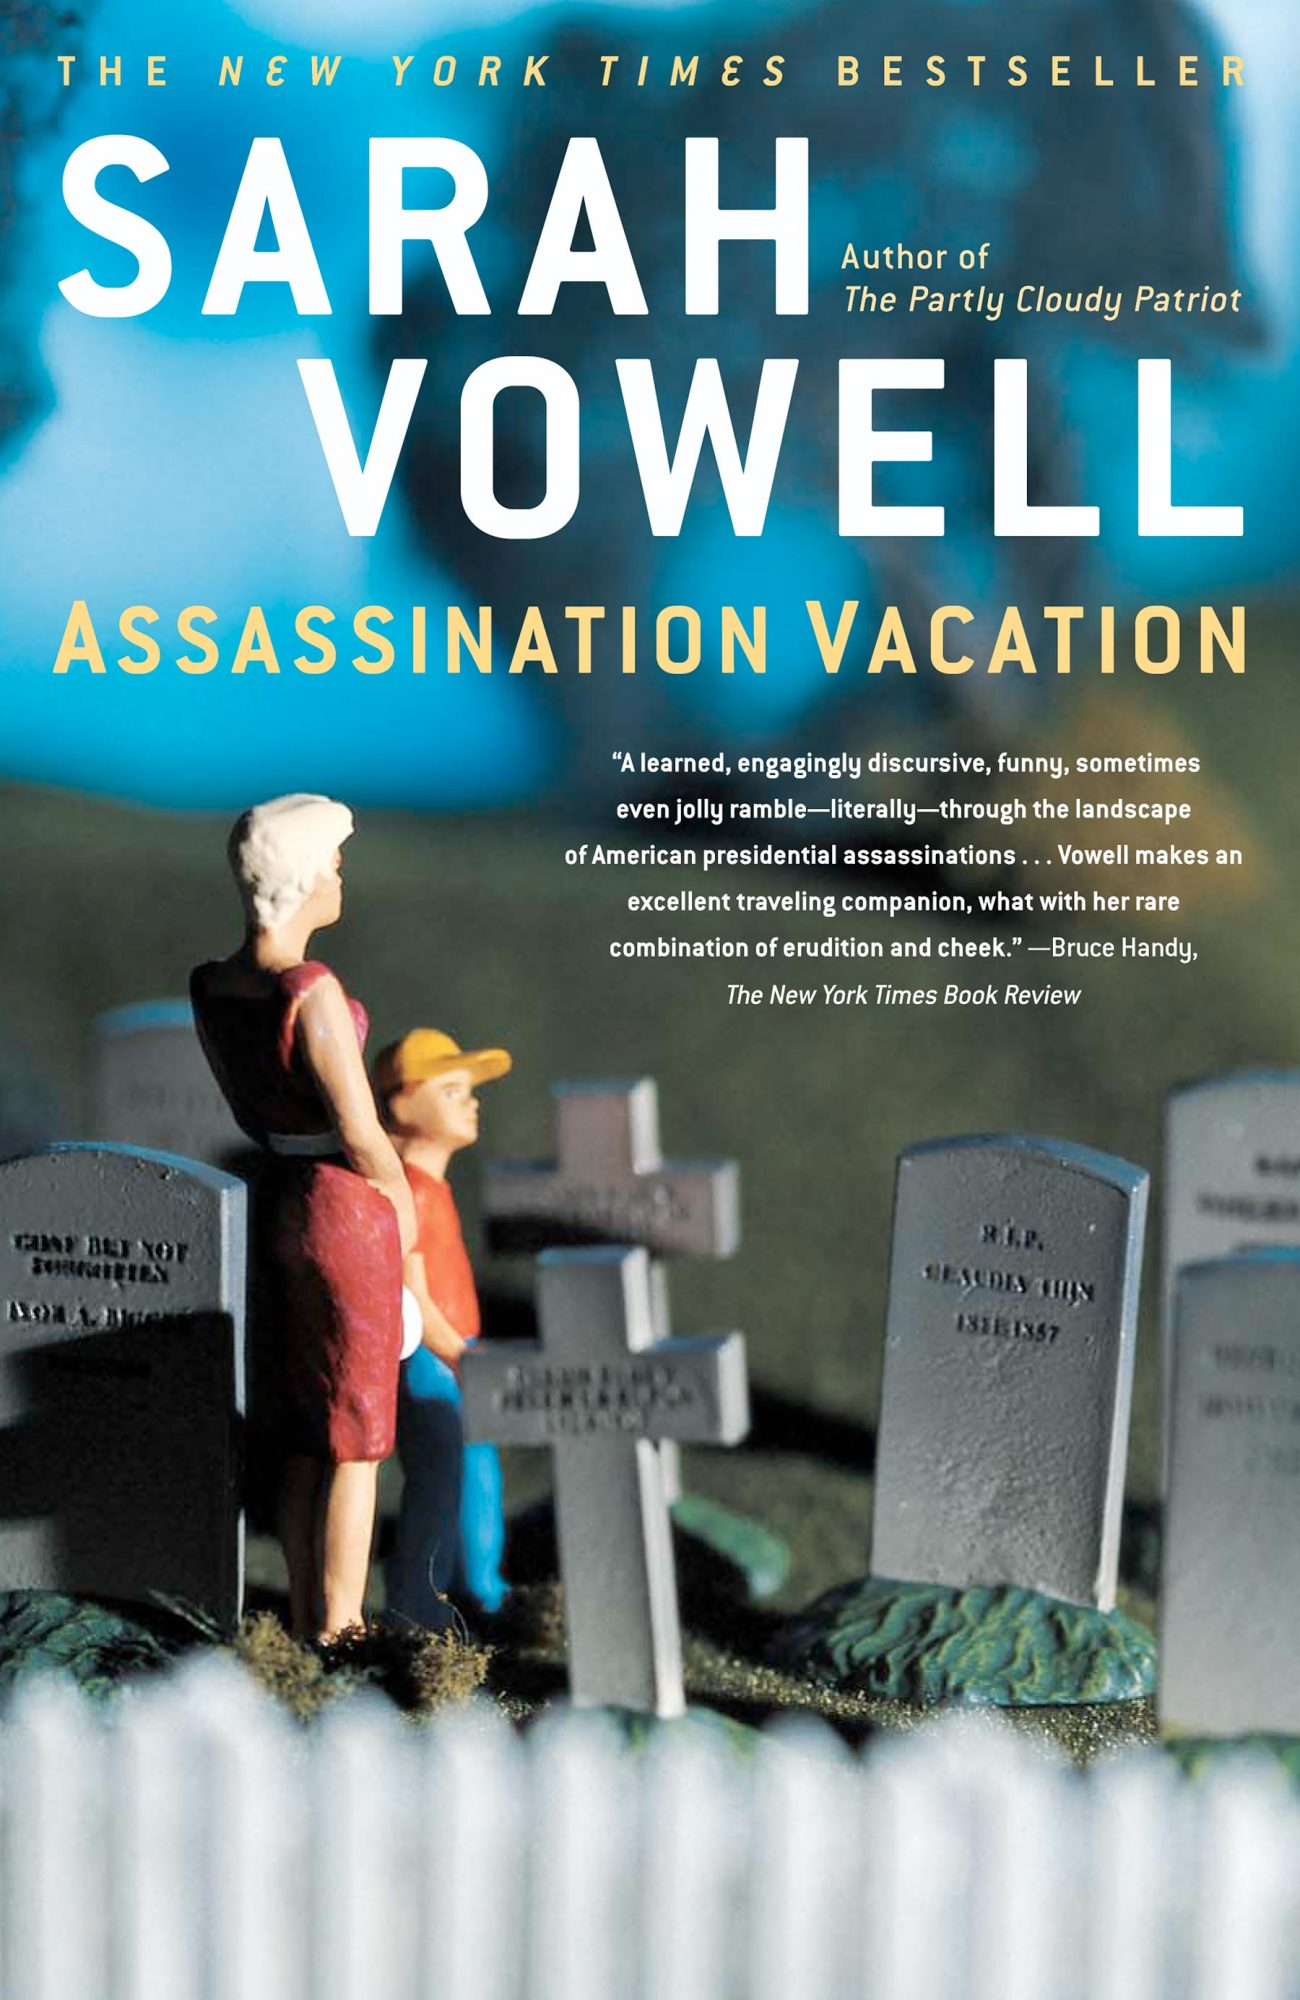 Assassination VacationBook by Sarah Vowell CR: Simon & Schuster